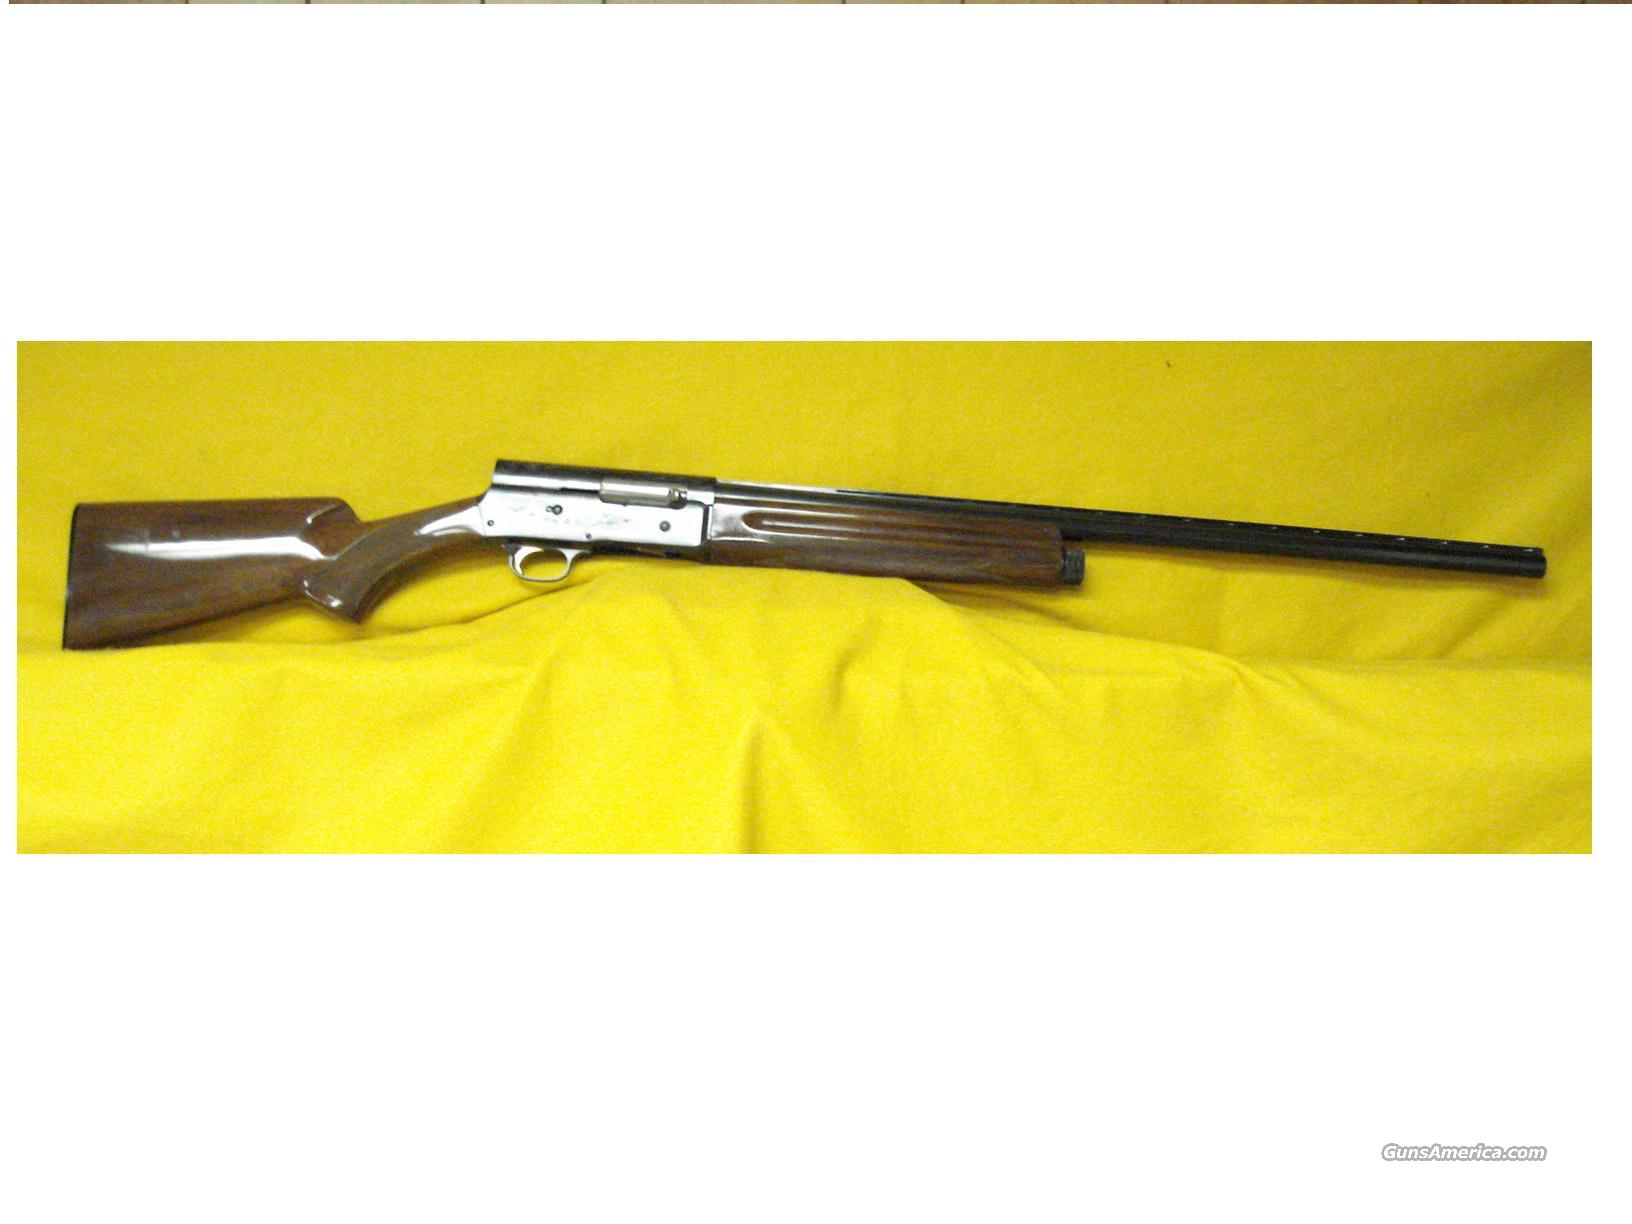 "BROWNING LT-12 12GA 28"" MOD. CHOKE  Guns > Shotguns > Browning Shotguns > Autoloaders > Hunting"